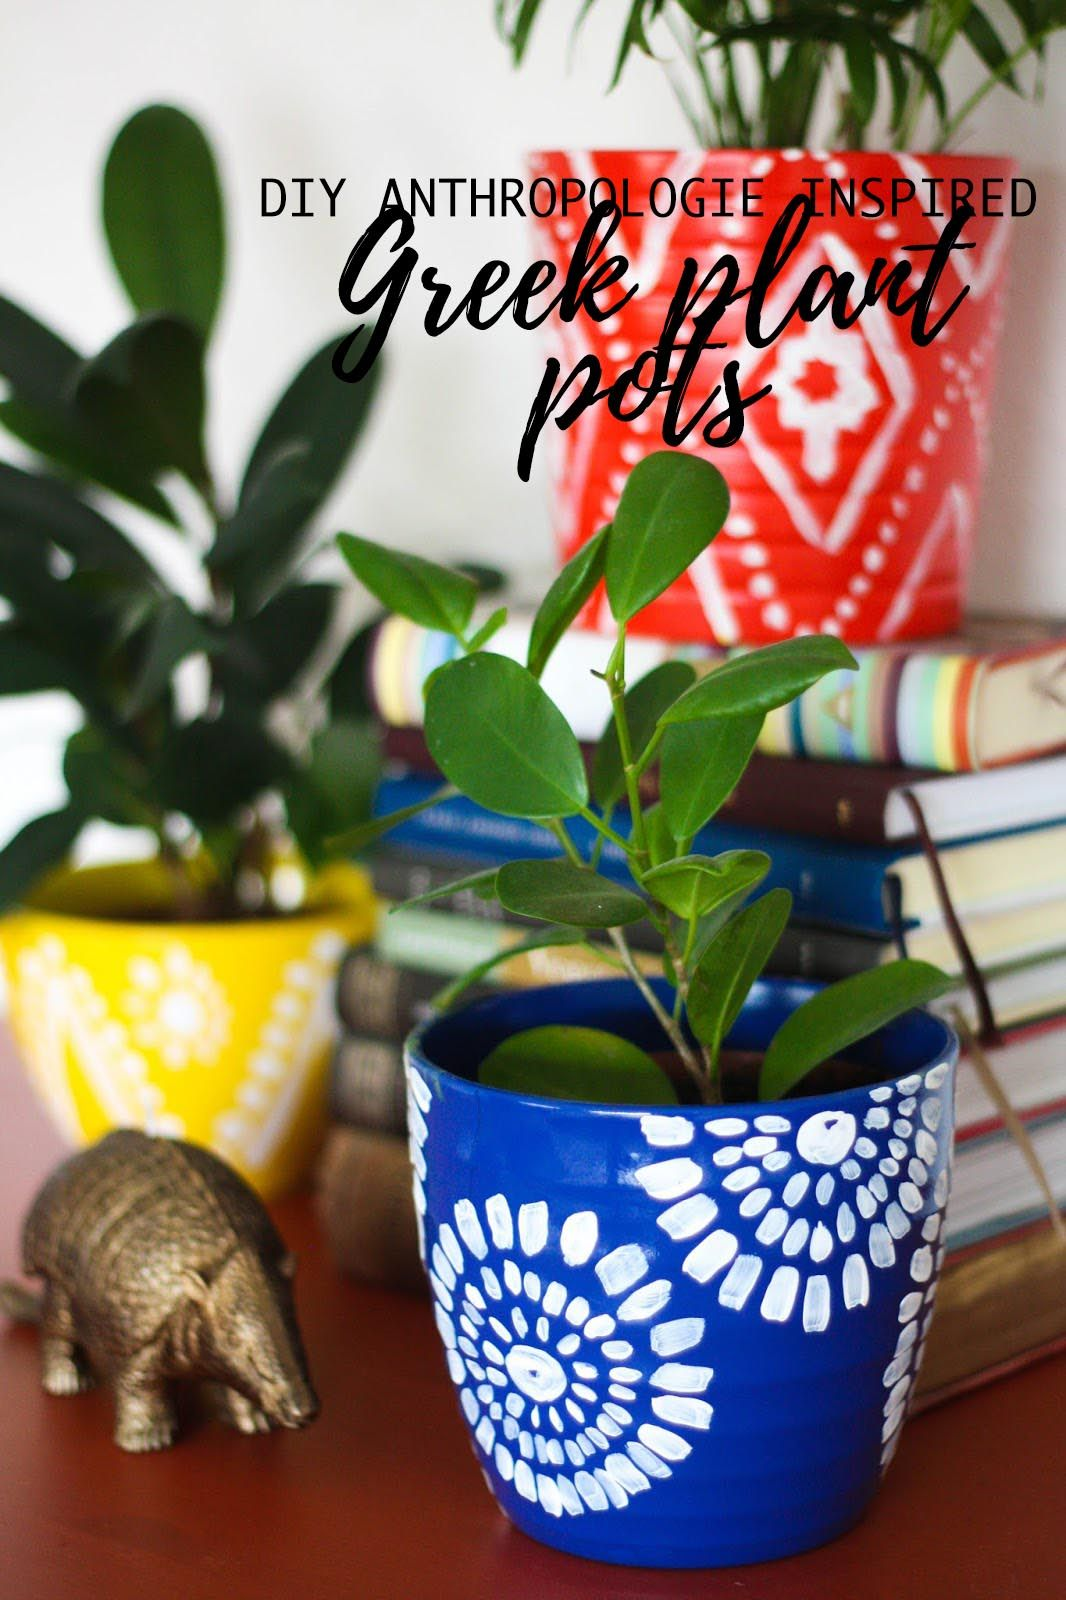 Diy anthropologieinspired greek plant pots anthropologie greek